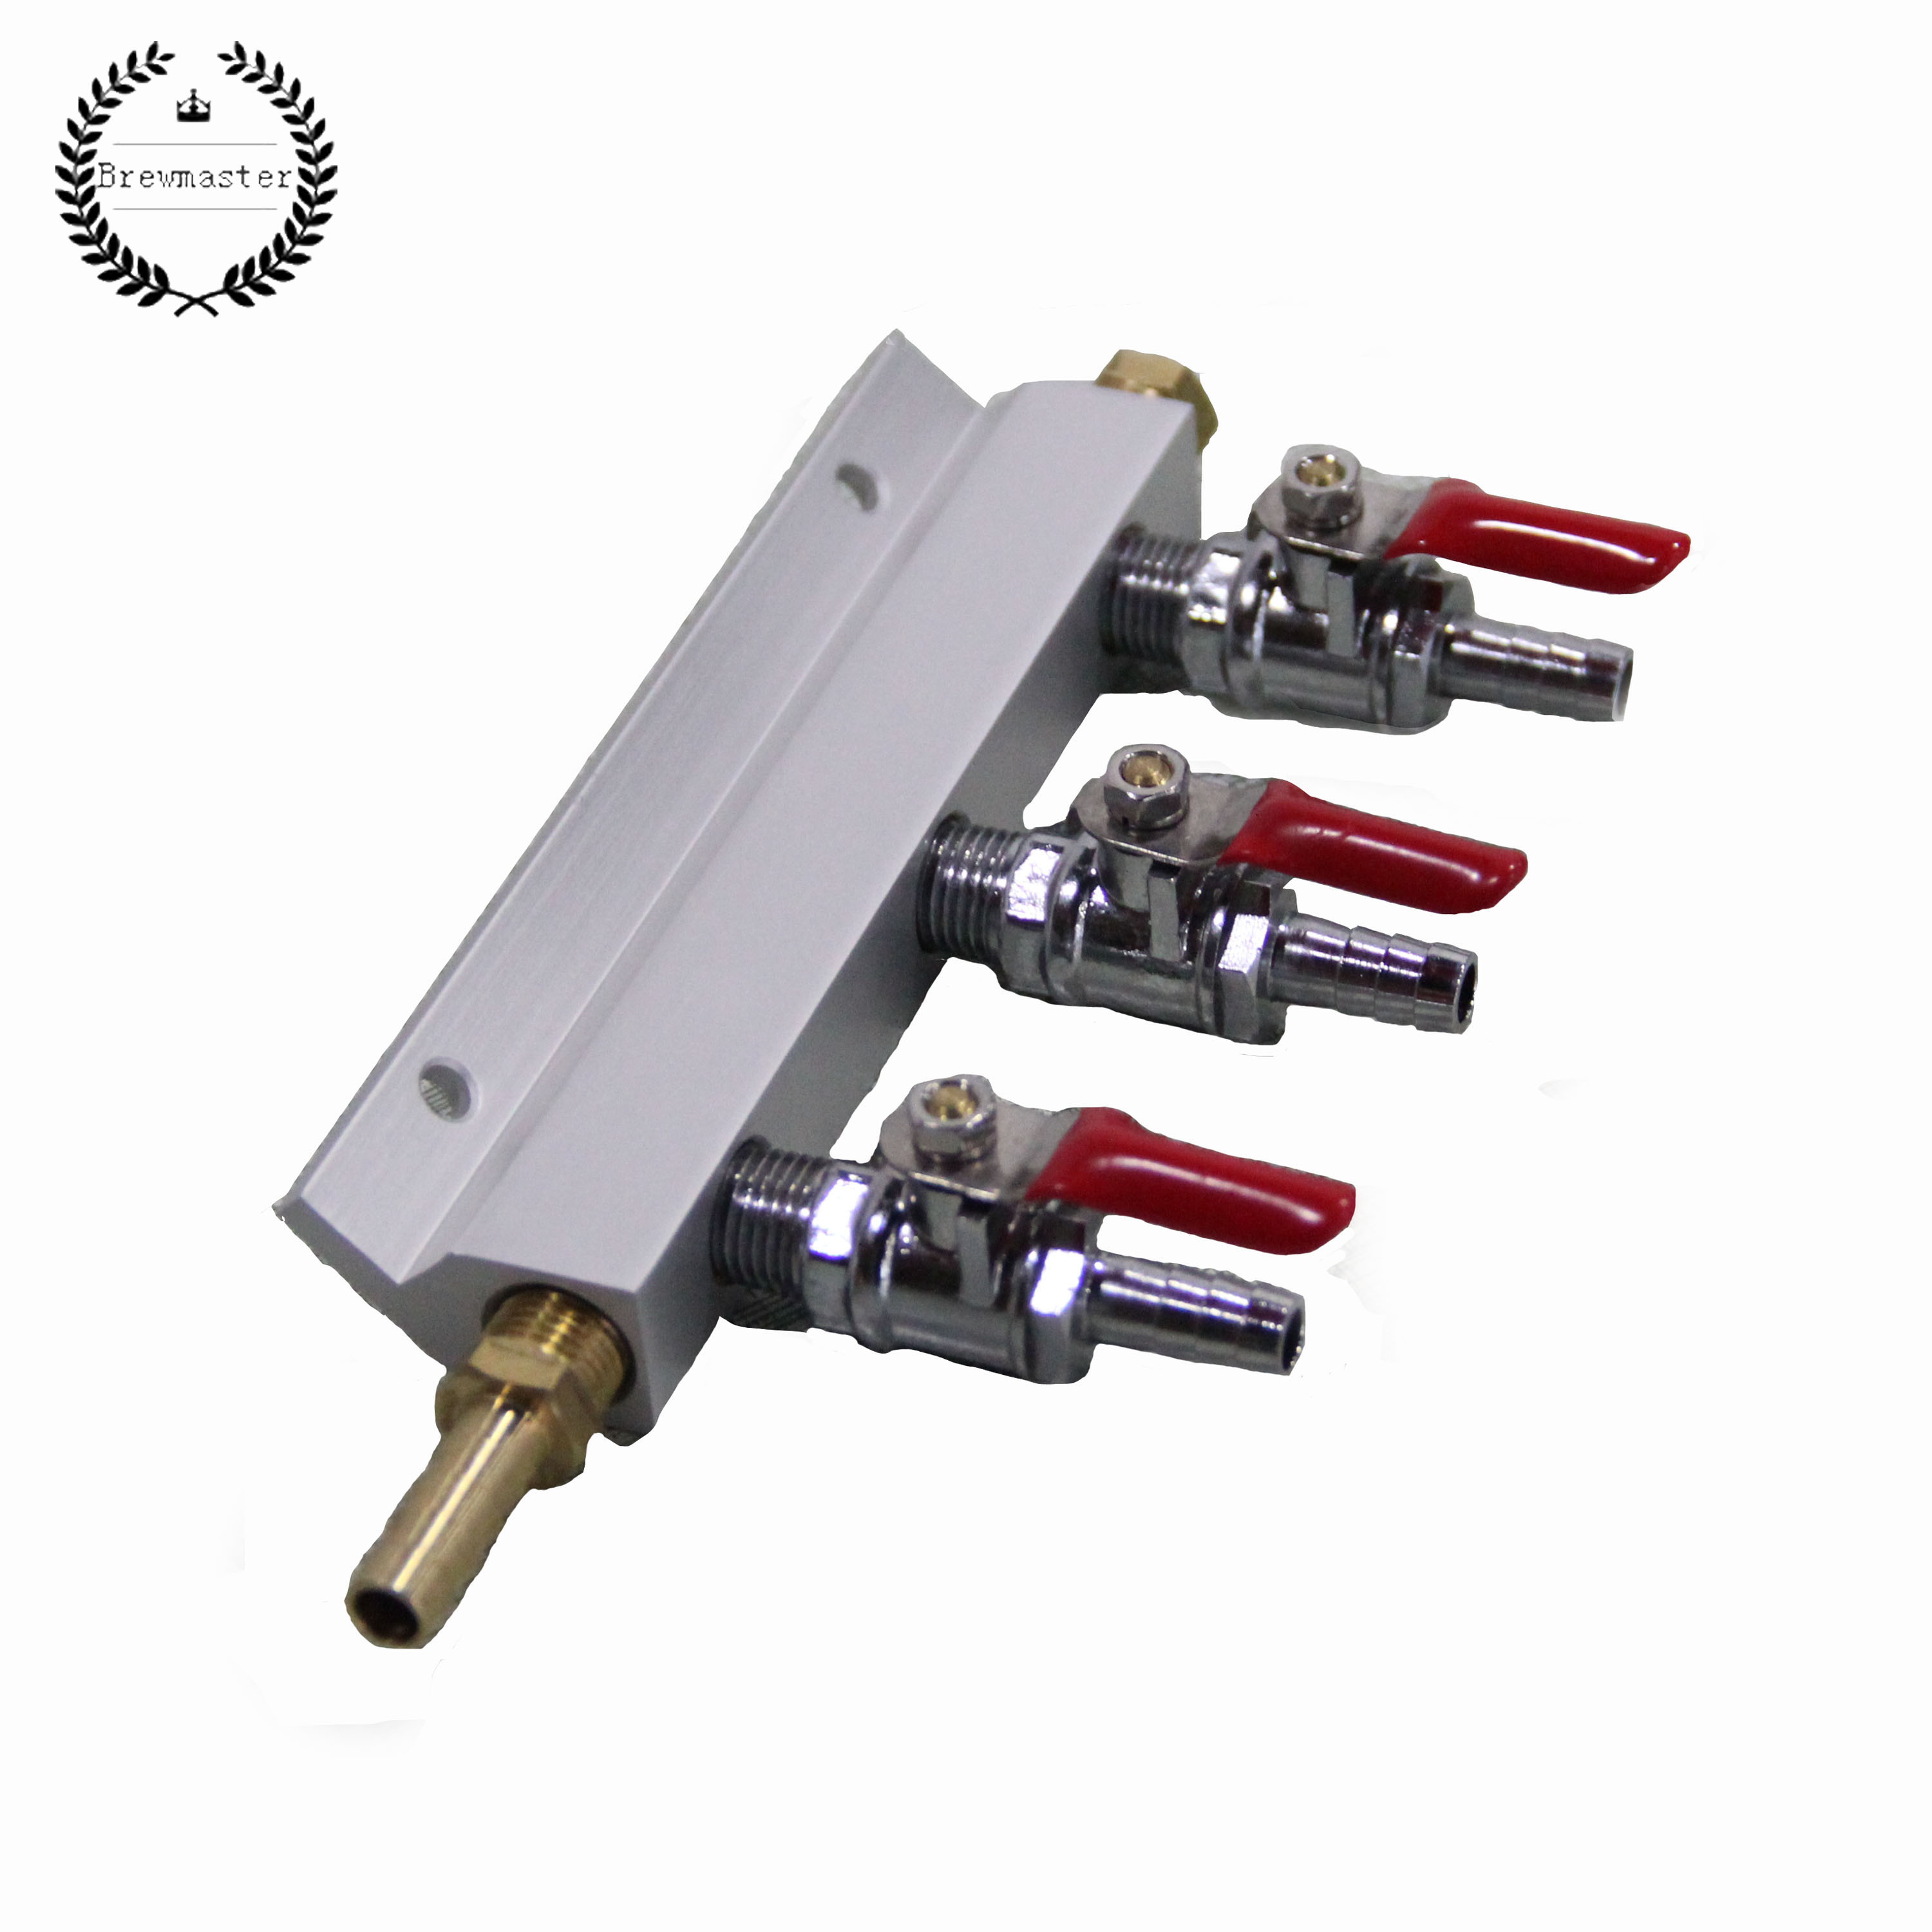 Gas Line Manifold Splitter 3 Ways (5/16inch, 8mm Barb)